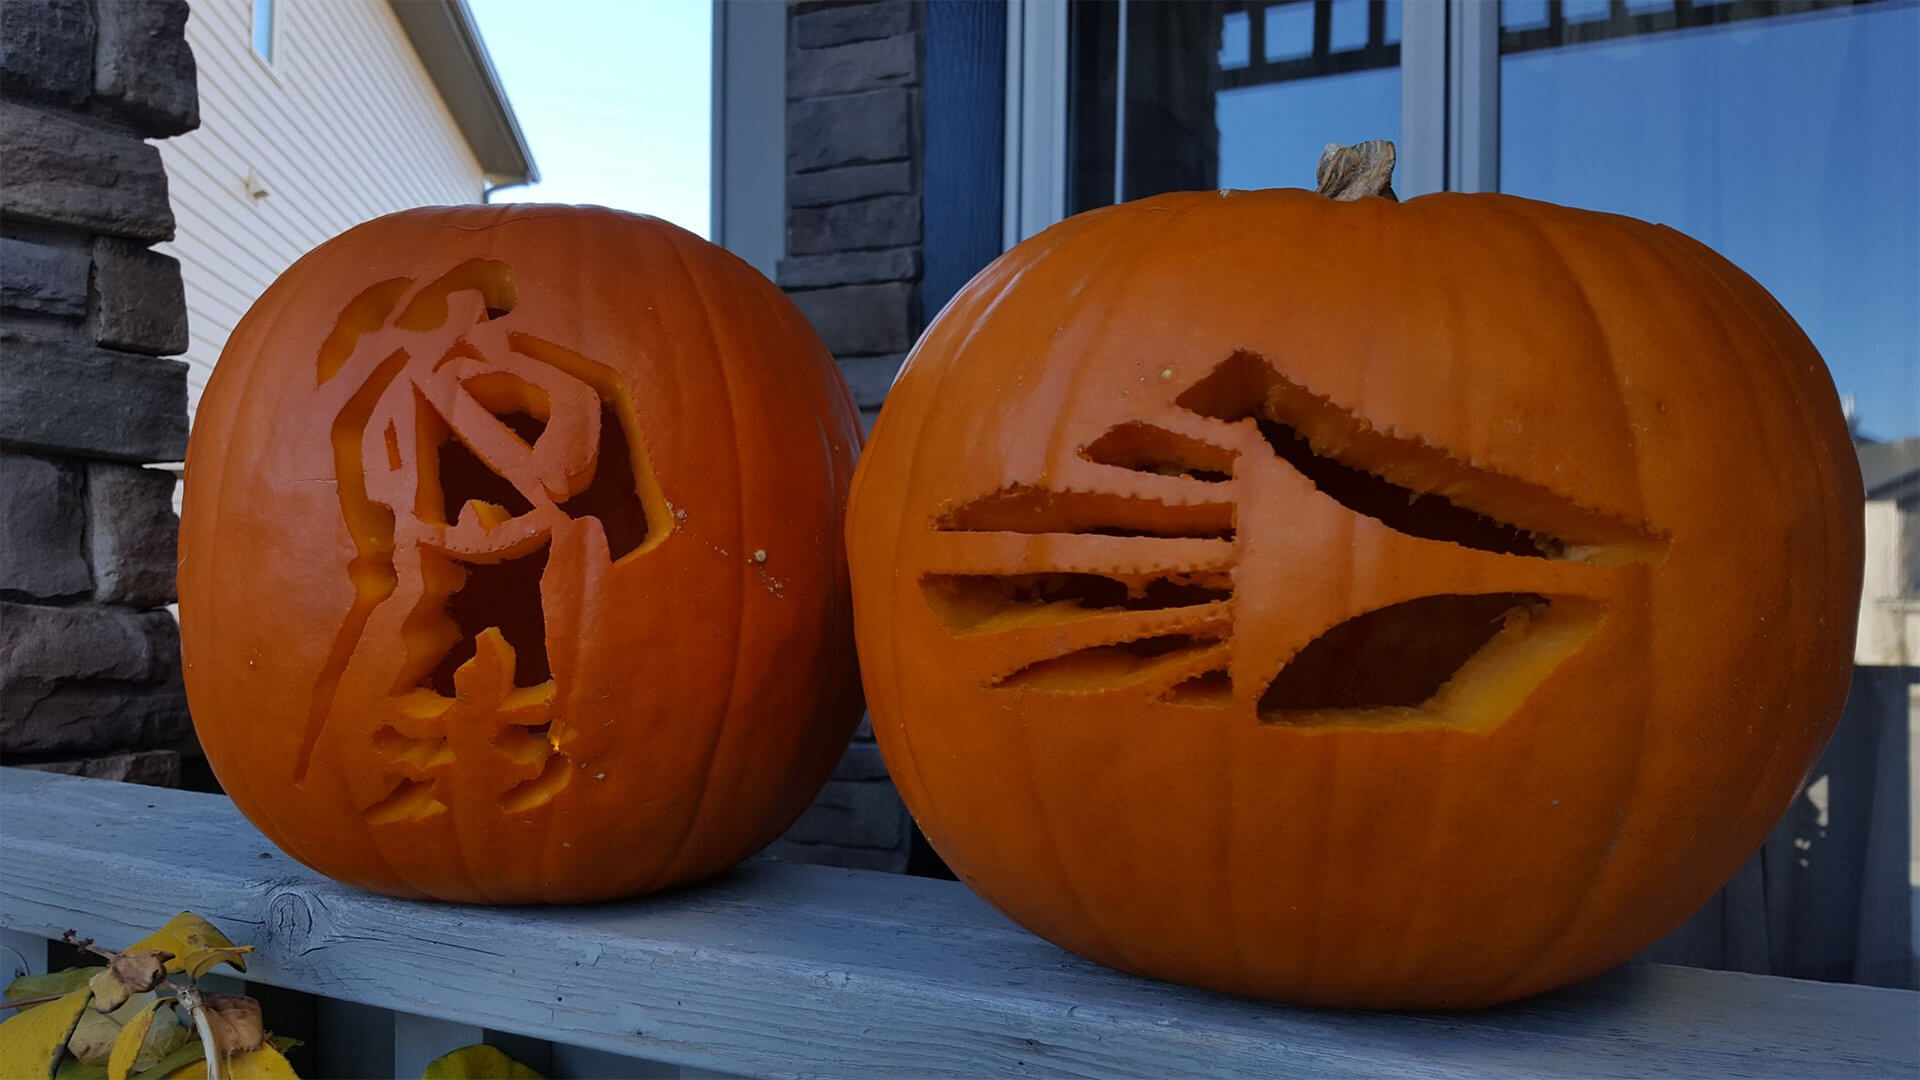 Drum corps pumpkins will put you in the Halloween spirit